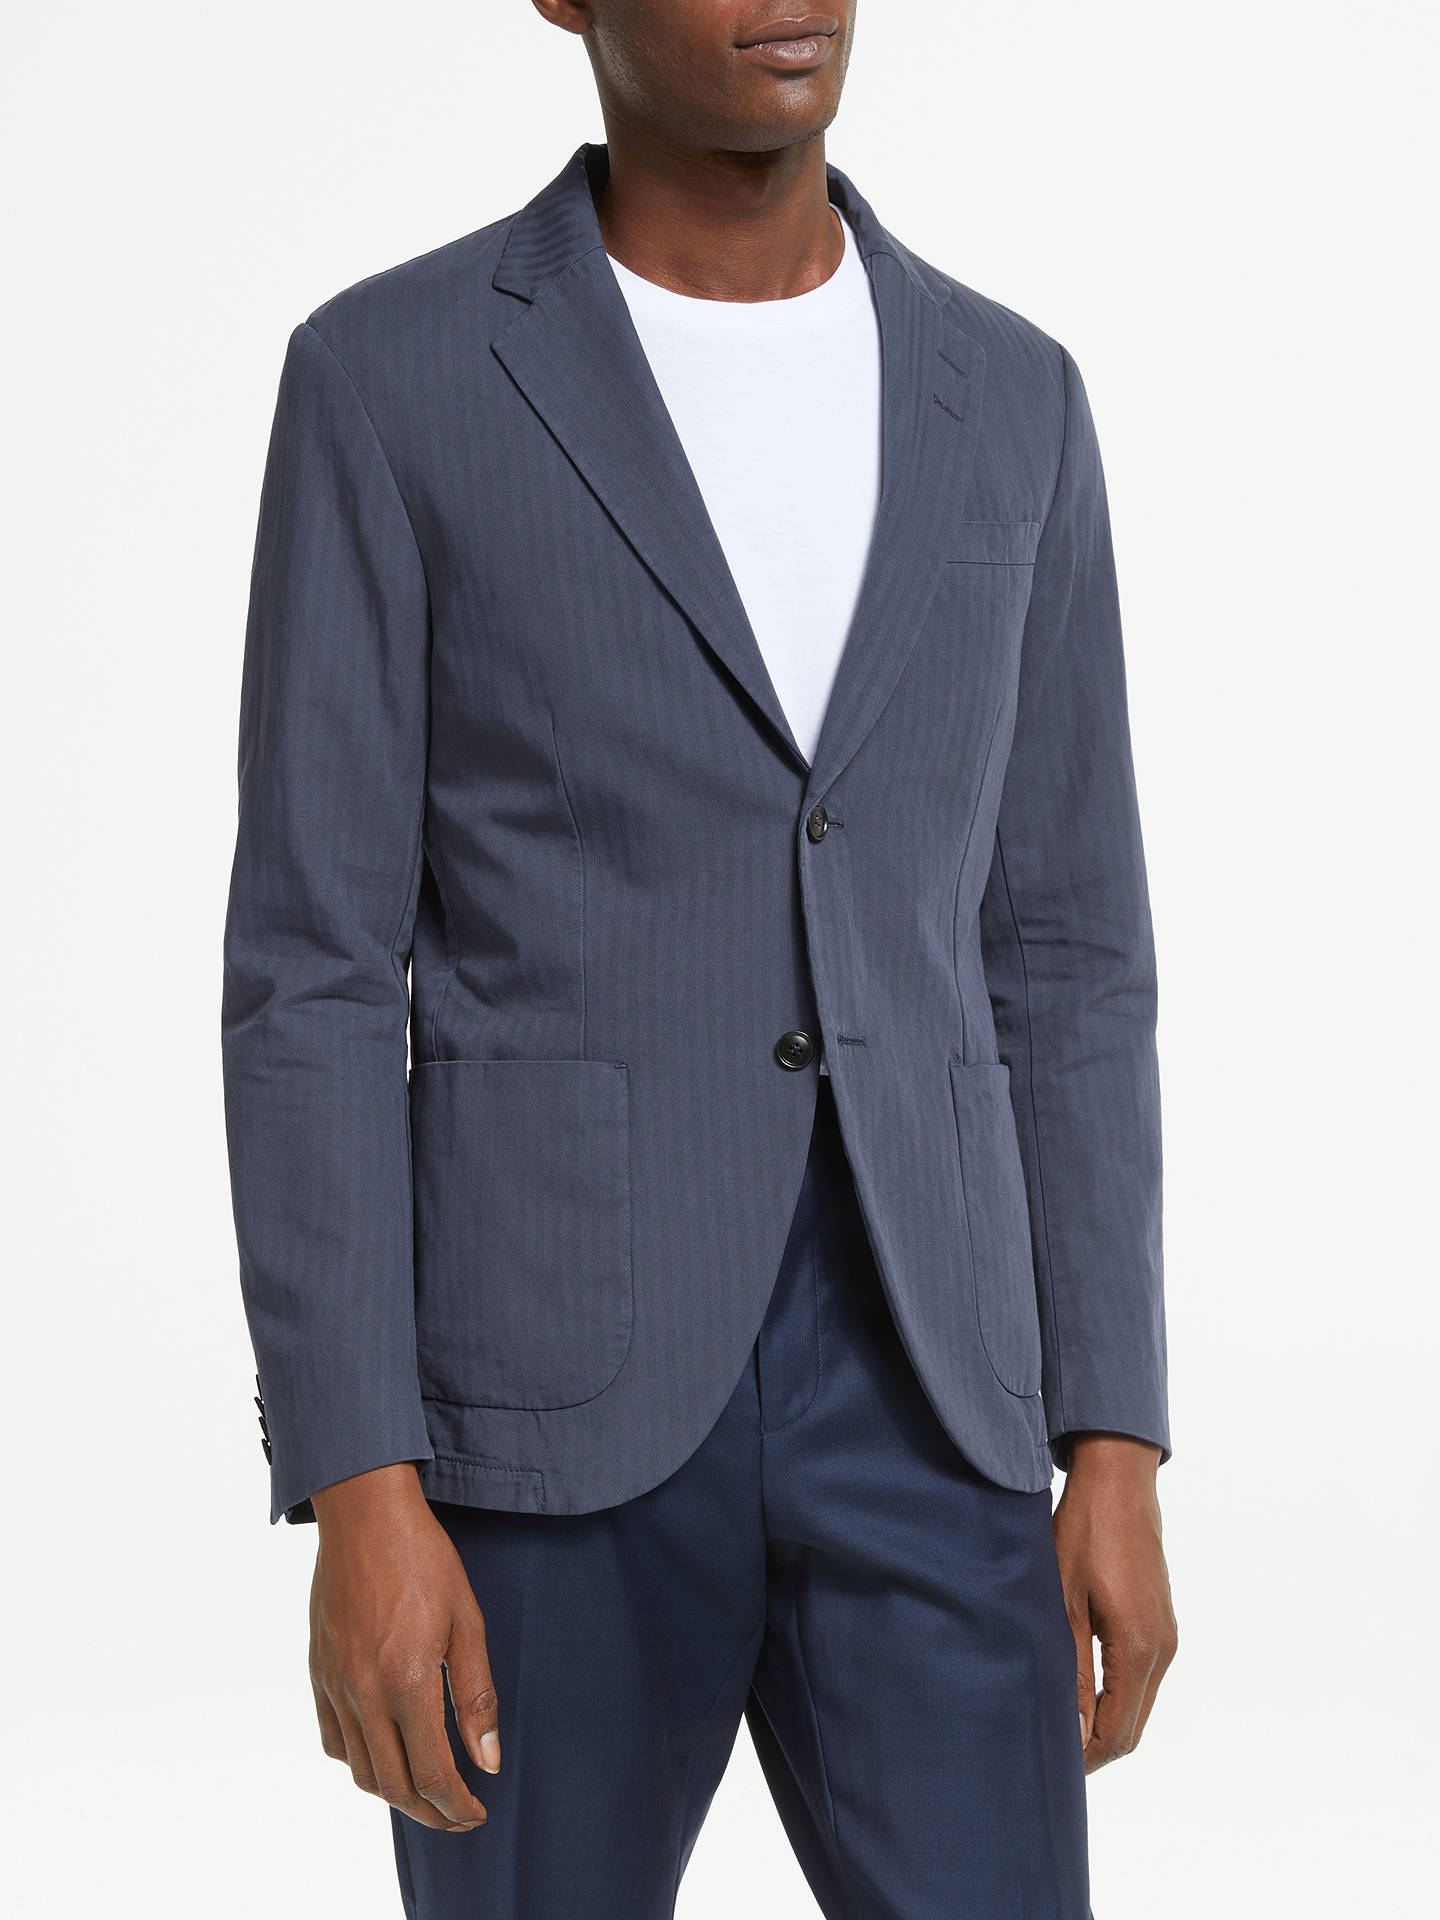 1f4f4f9aae9a Buy Tiger of Sweden Cotton Linen Herringbone Slim Fit Blazer, Navy, 36R  Online at ...